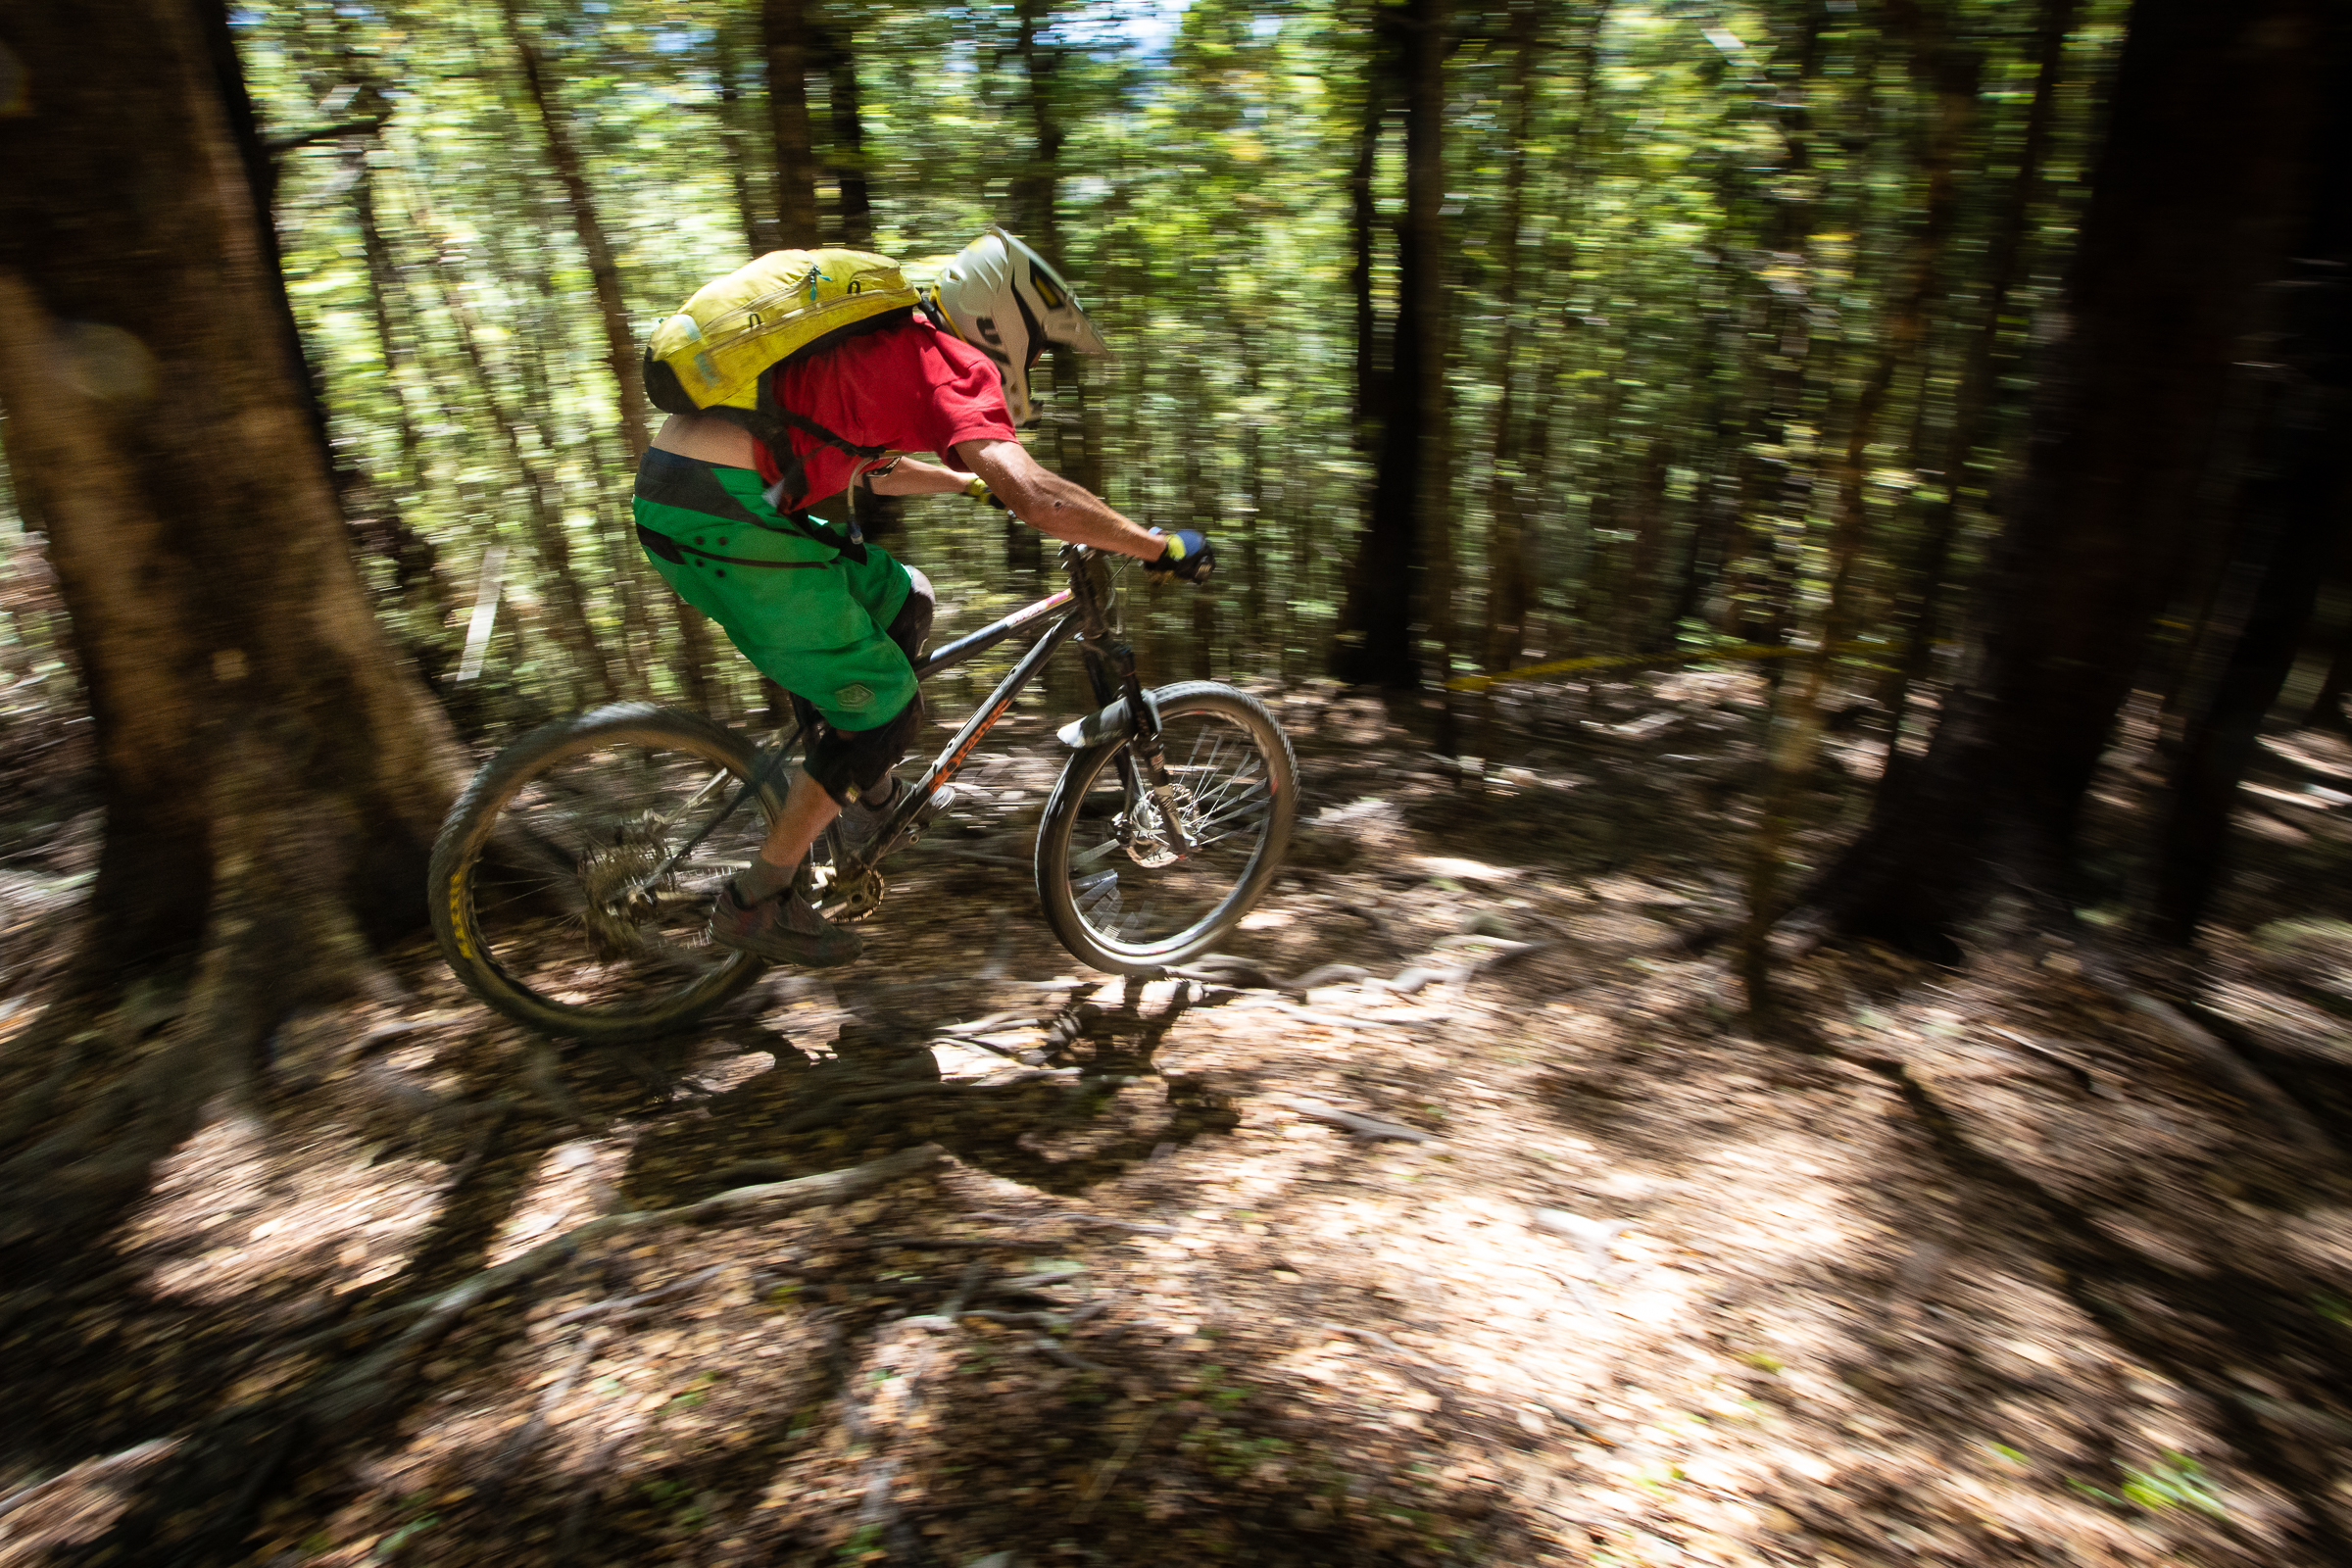 A few brave souls showed no regard for their bodies by taking on the course on a hardtail. Photo: Matt Wood.